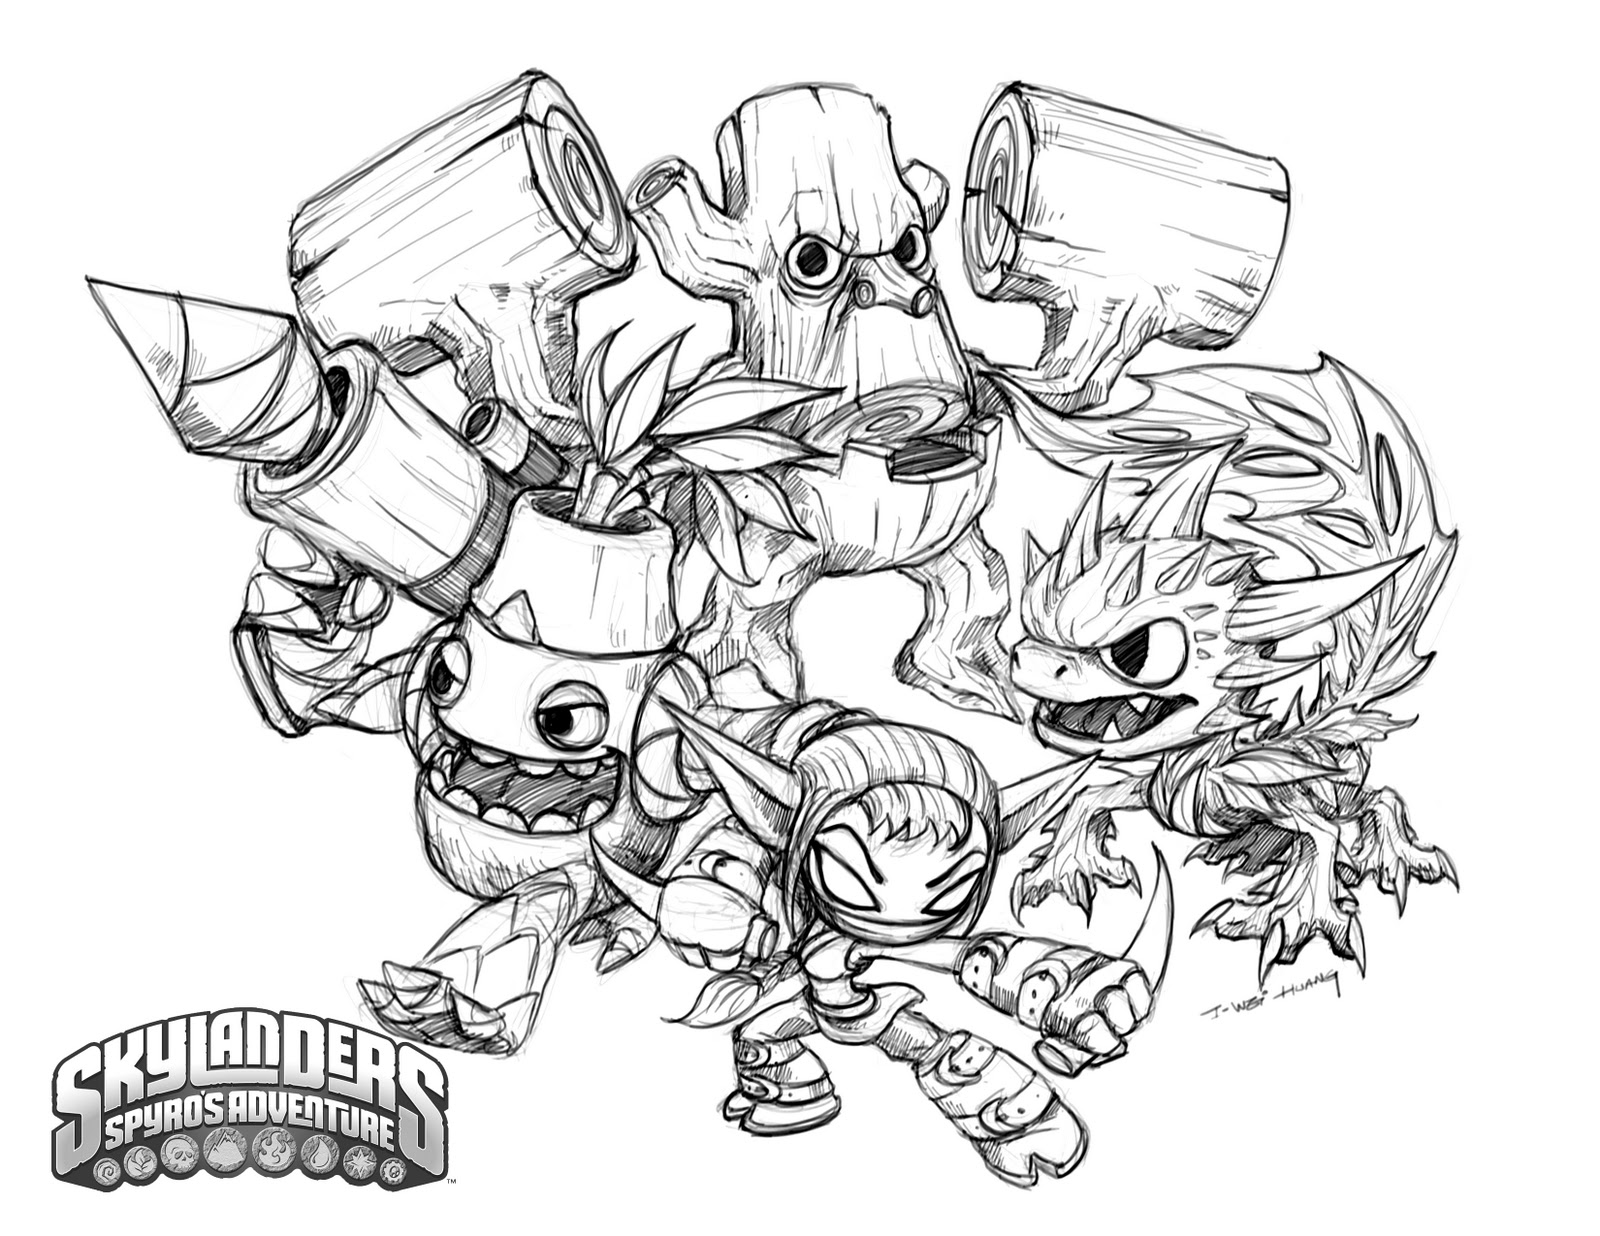 skylanders giants coloring pages | CrabFu Blog: Skylanders Speed Drawing & Coloring Pages